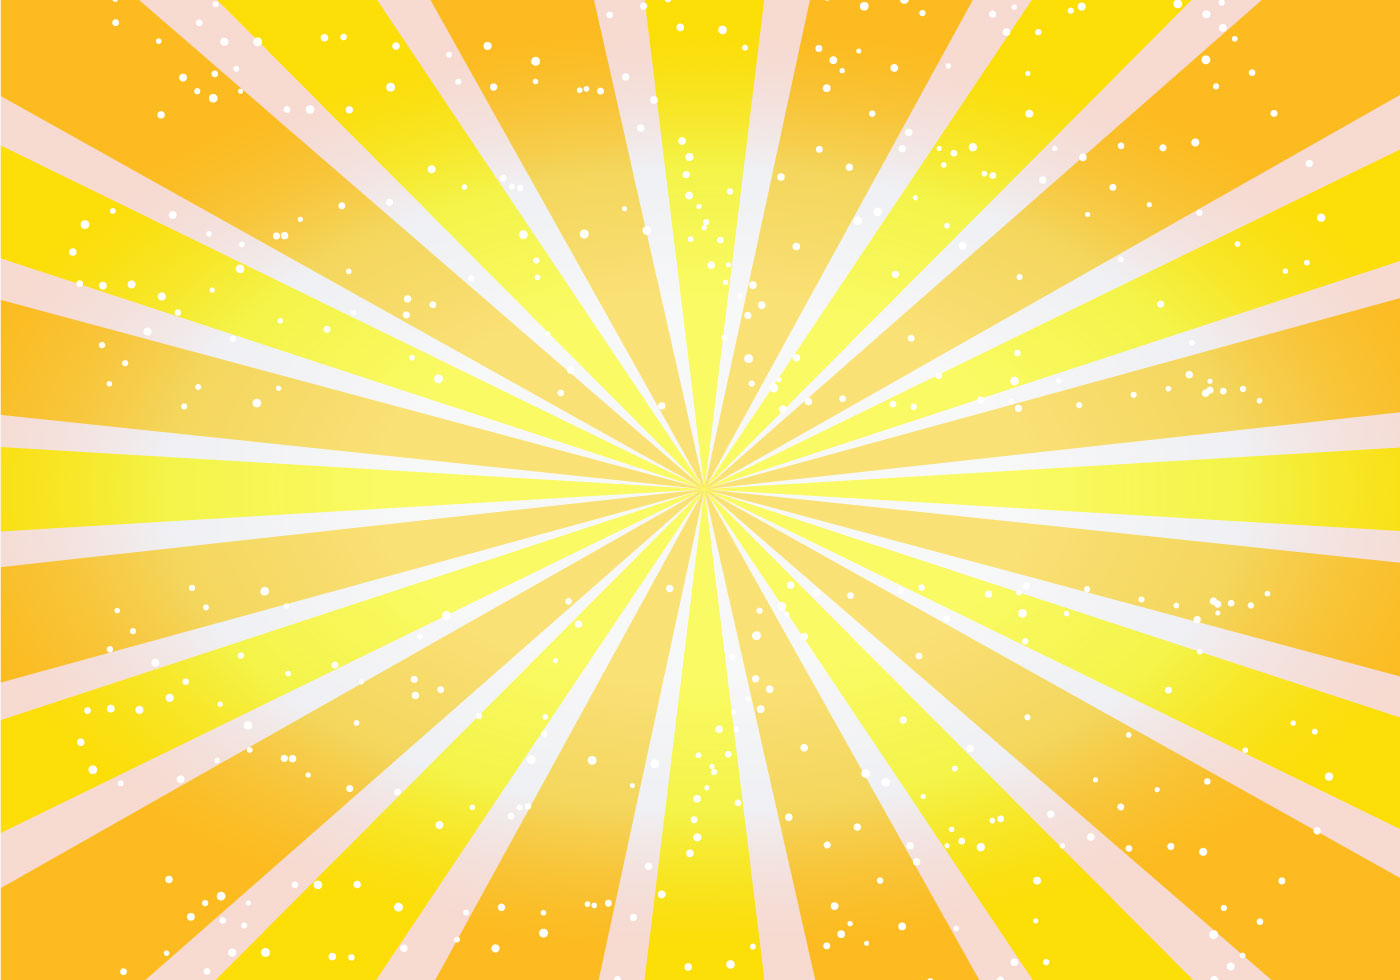 free yellow sunrises vector download free vector art